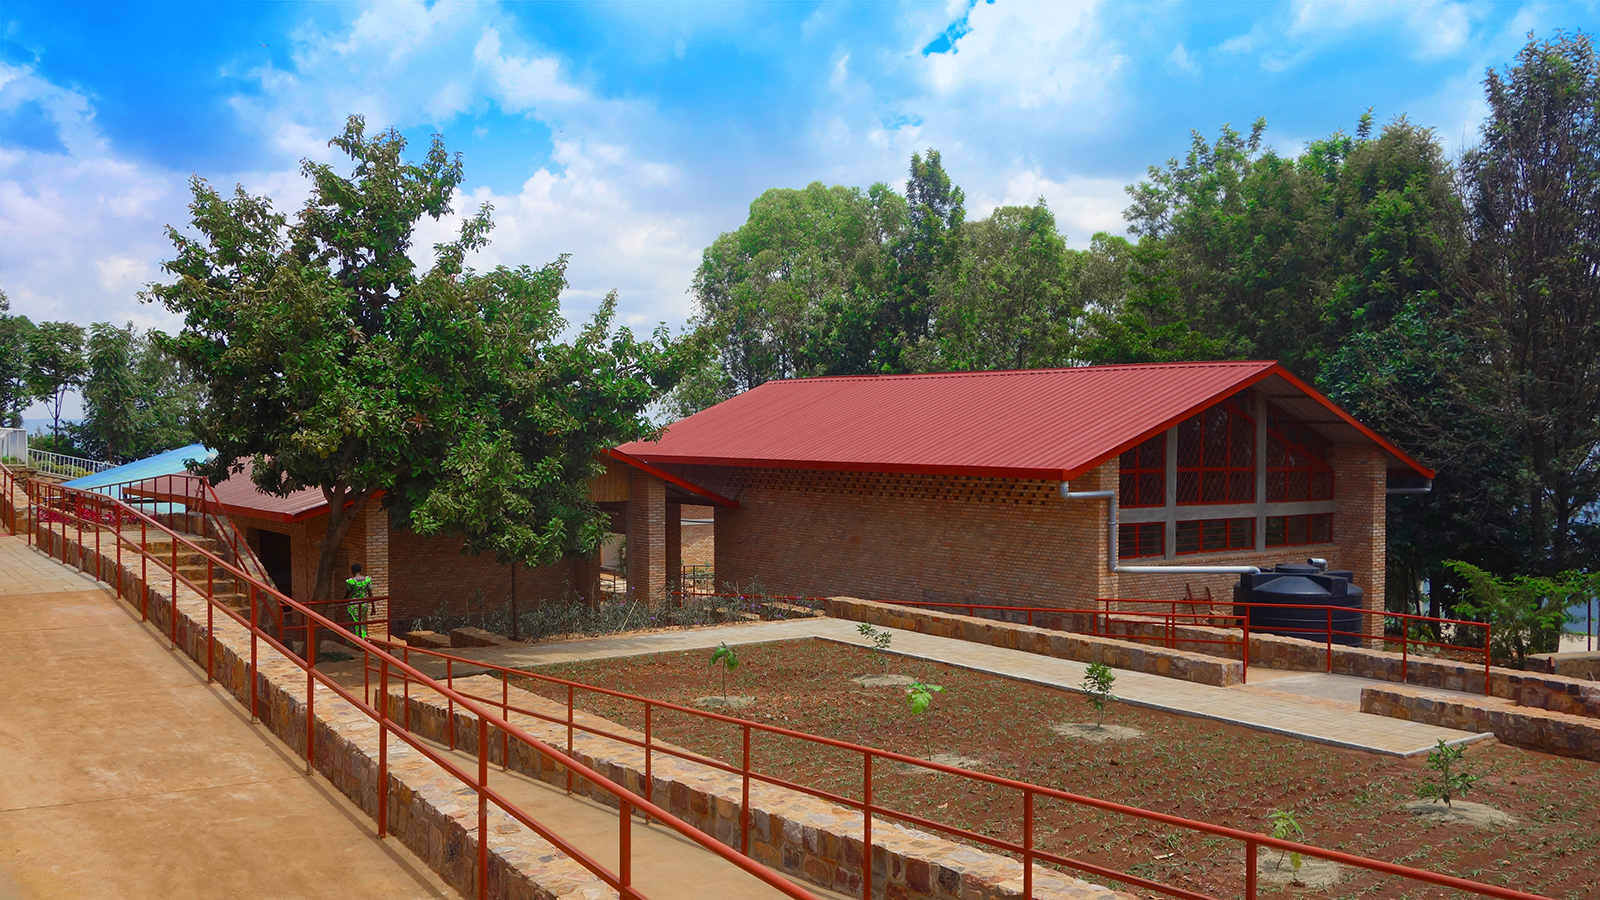 GAC_MasoroHealthCenter_Construction_94.jpg